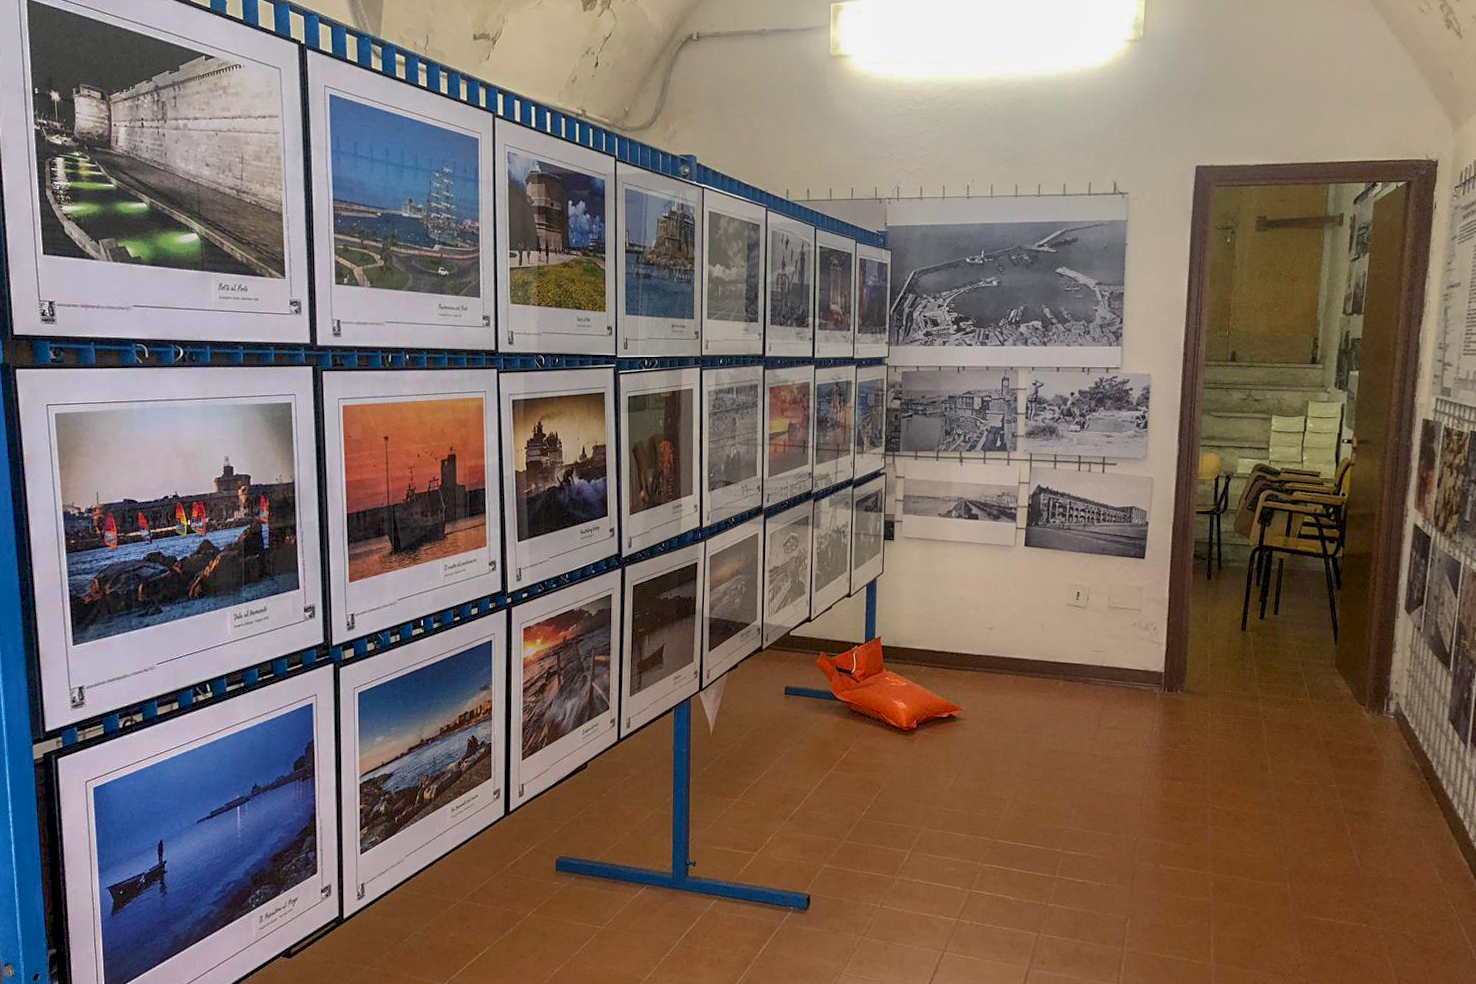 Some photographies of Postcards from Civitavecchia displayed at Casa della Memoria di Civitavecchia